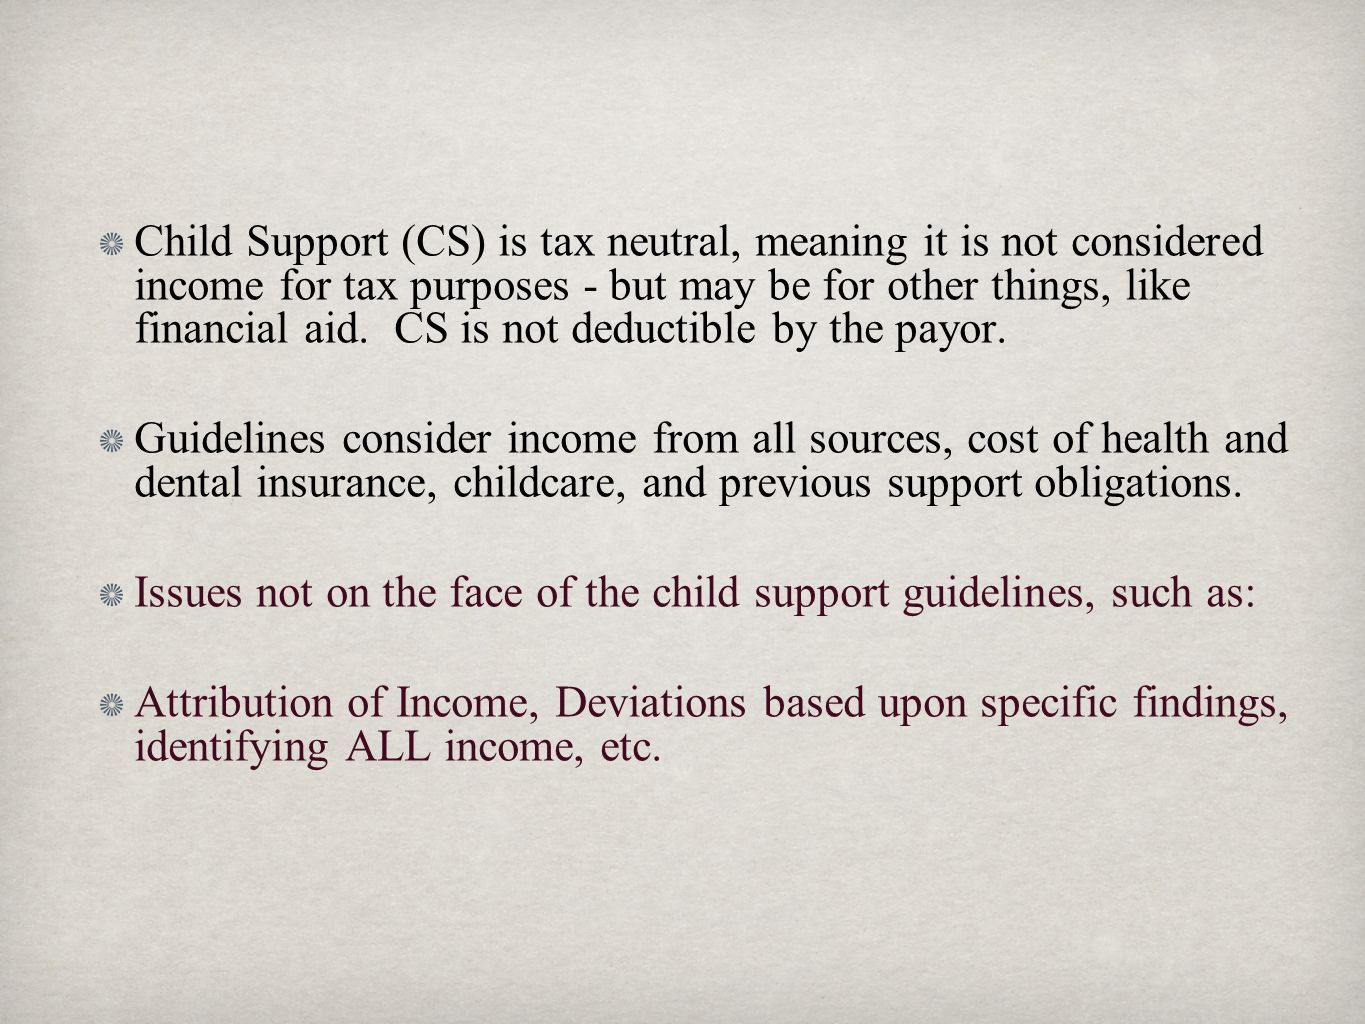 Child Support (CS) is tax neutral, meaning it is not considered income for tax purposes - but may be for other things, like financial aid. CS is not deductible by the payor.